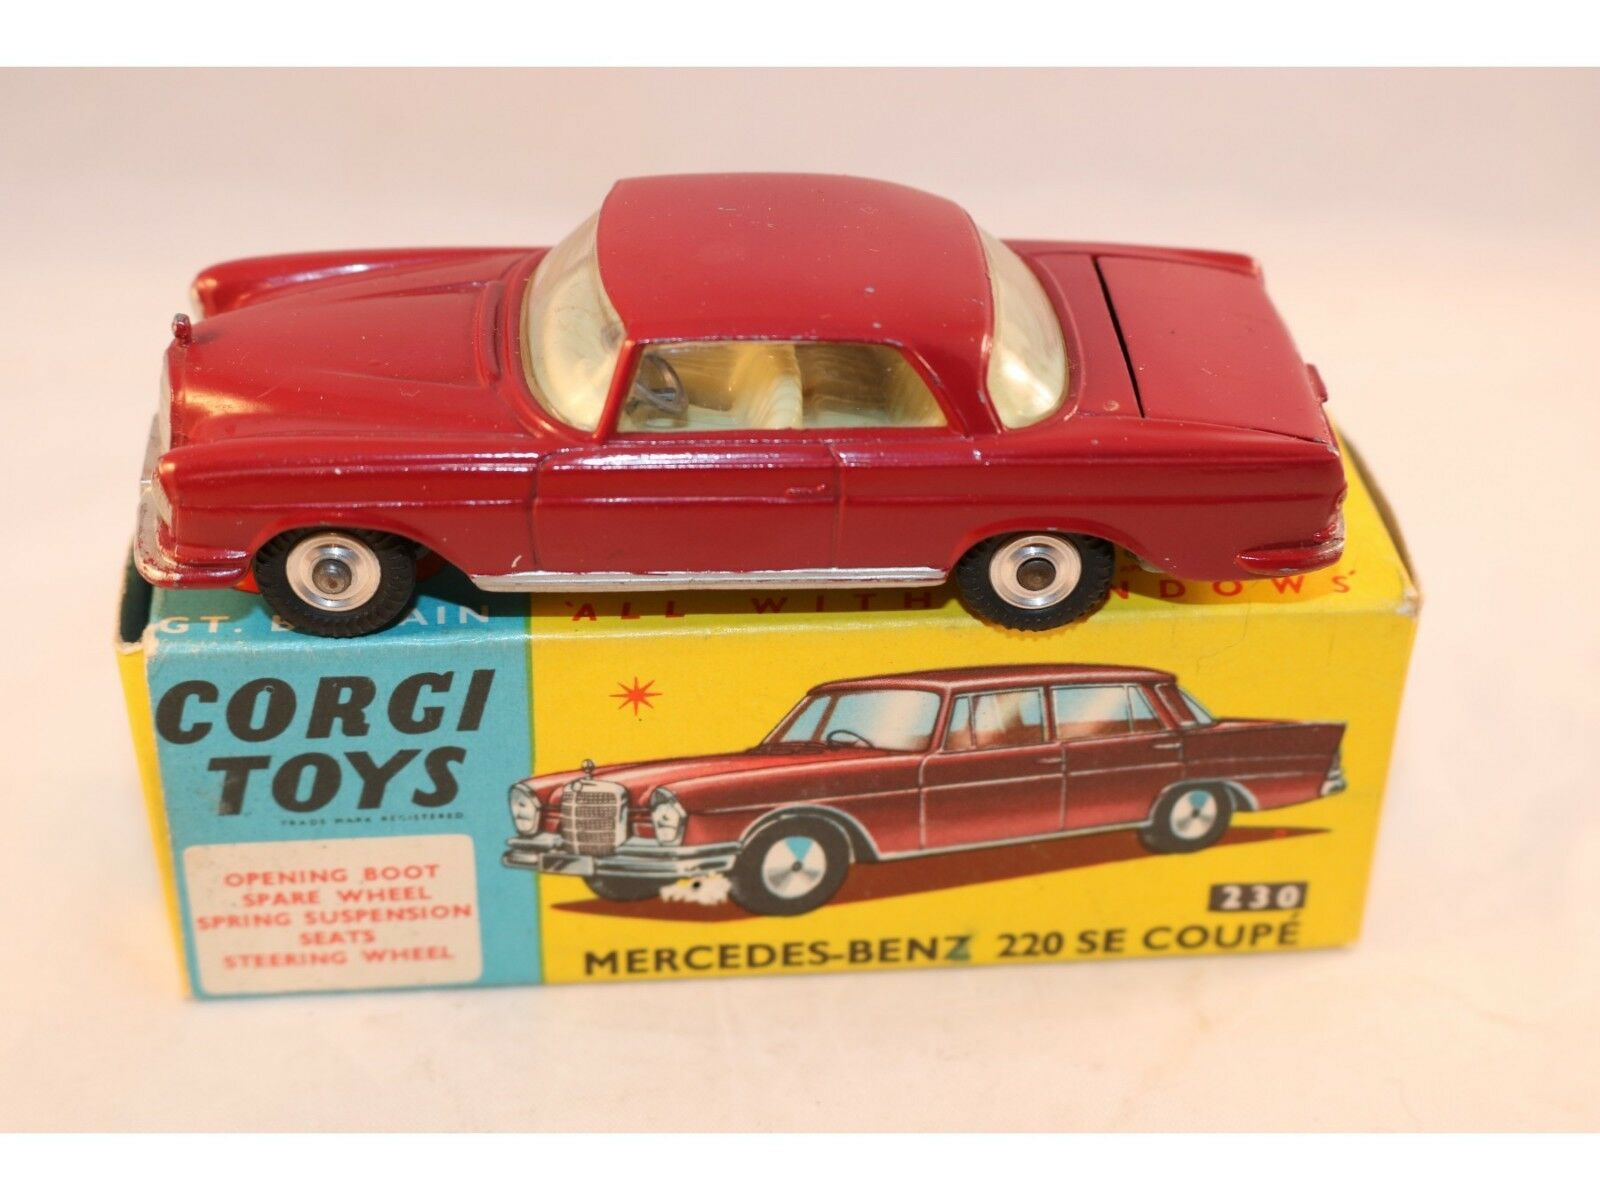 Corgi Toys 230 Mercedes Benz 220 SE coupe near mint in box with spare tyre